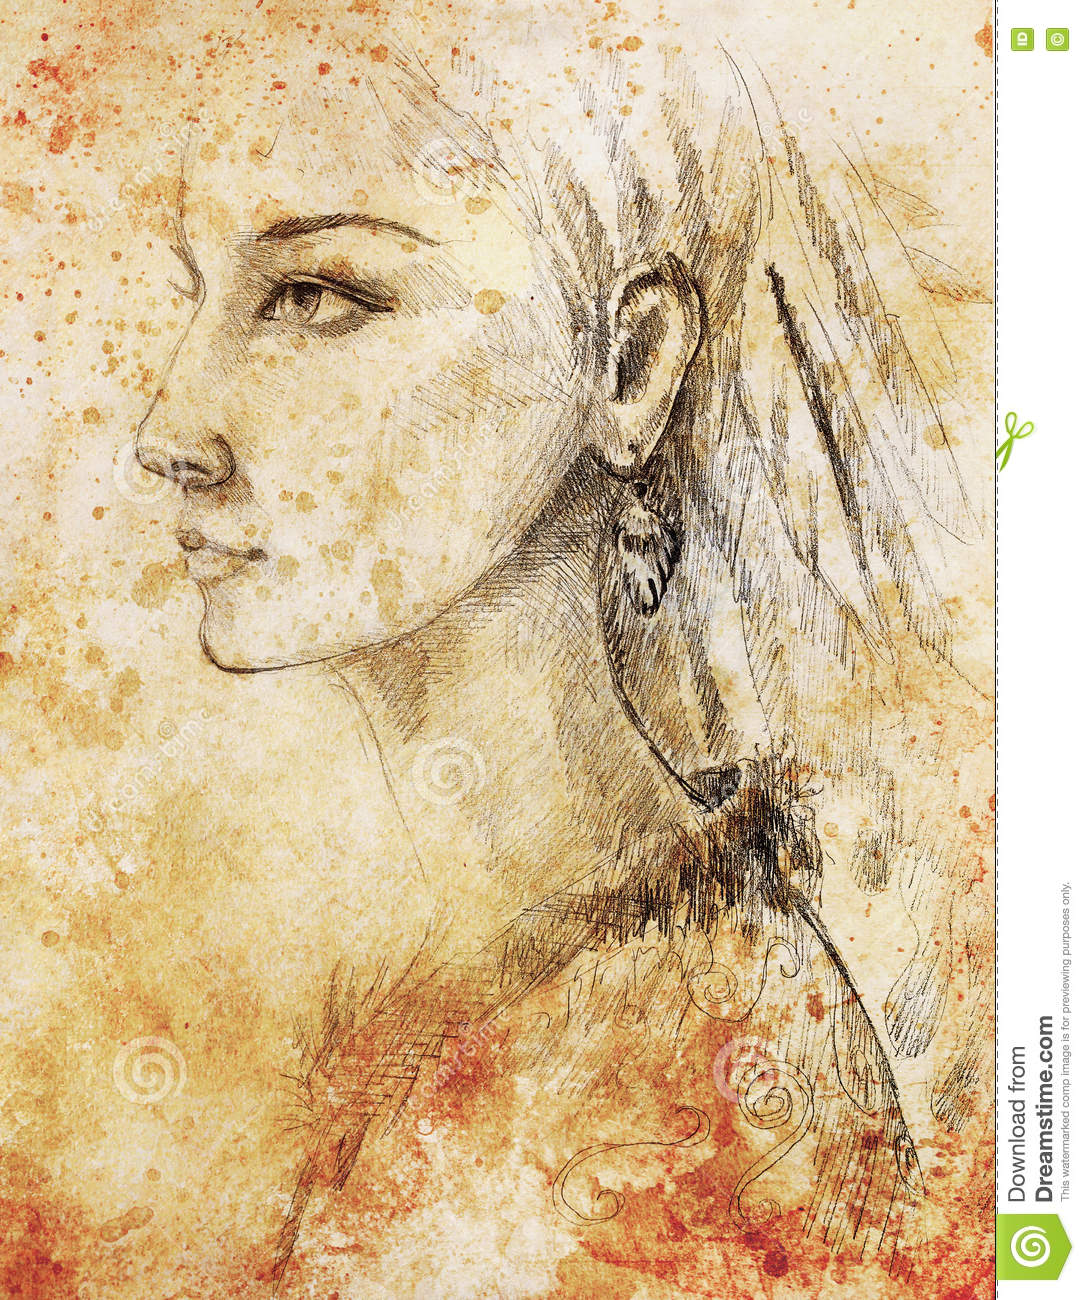 Pencil drawing on paper indian woman and feathers in hair sepia color